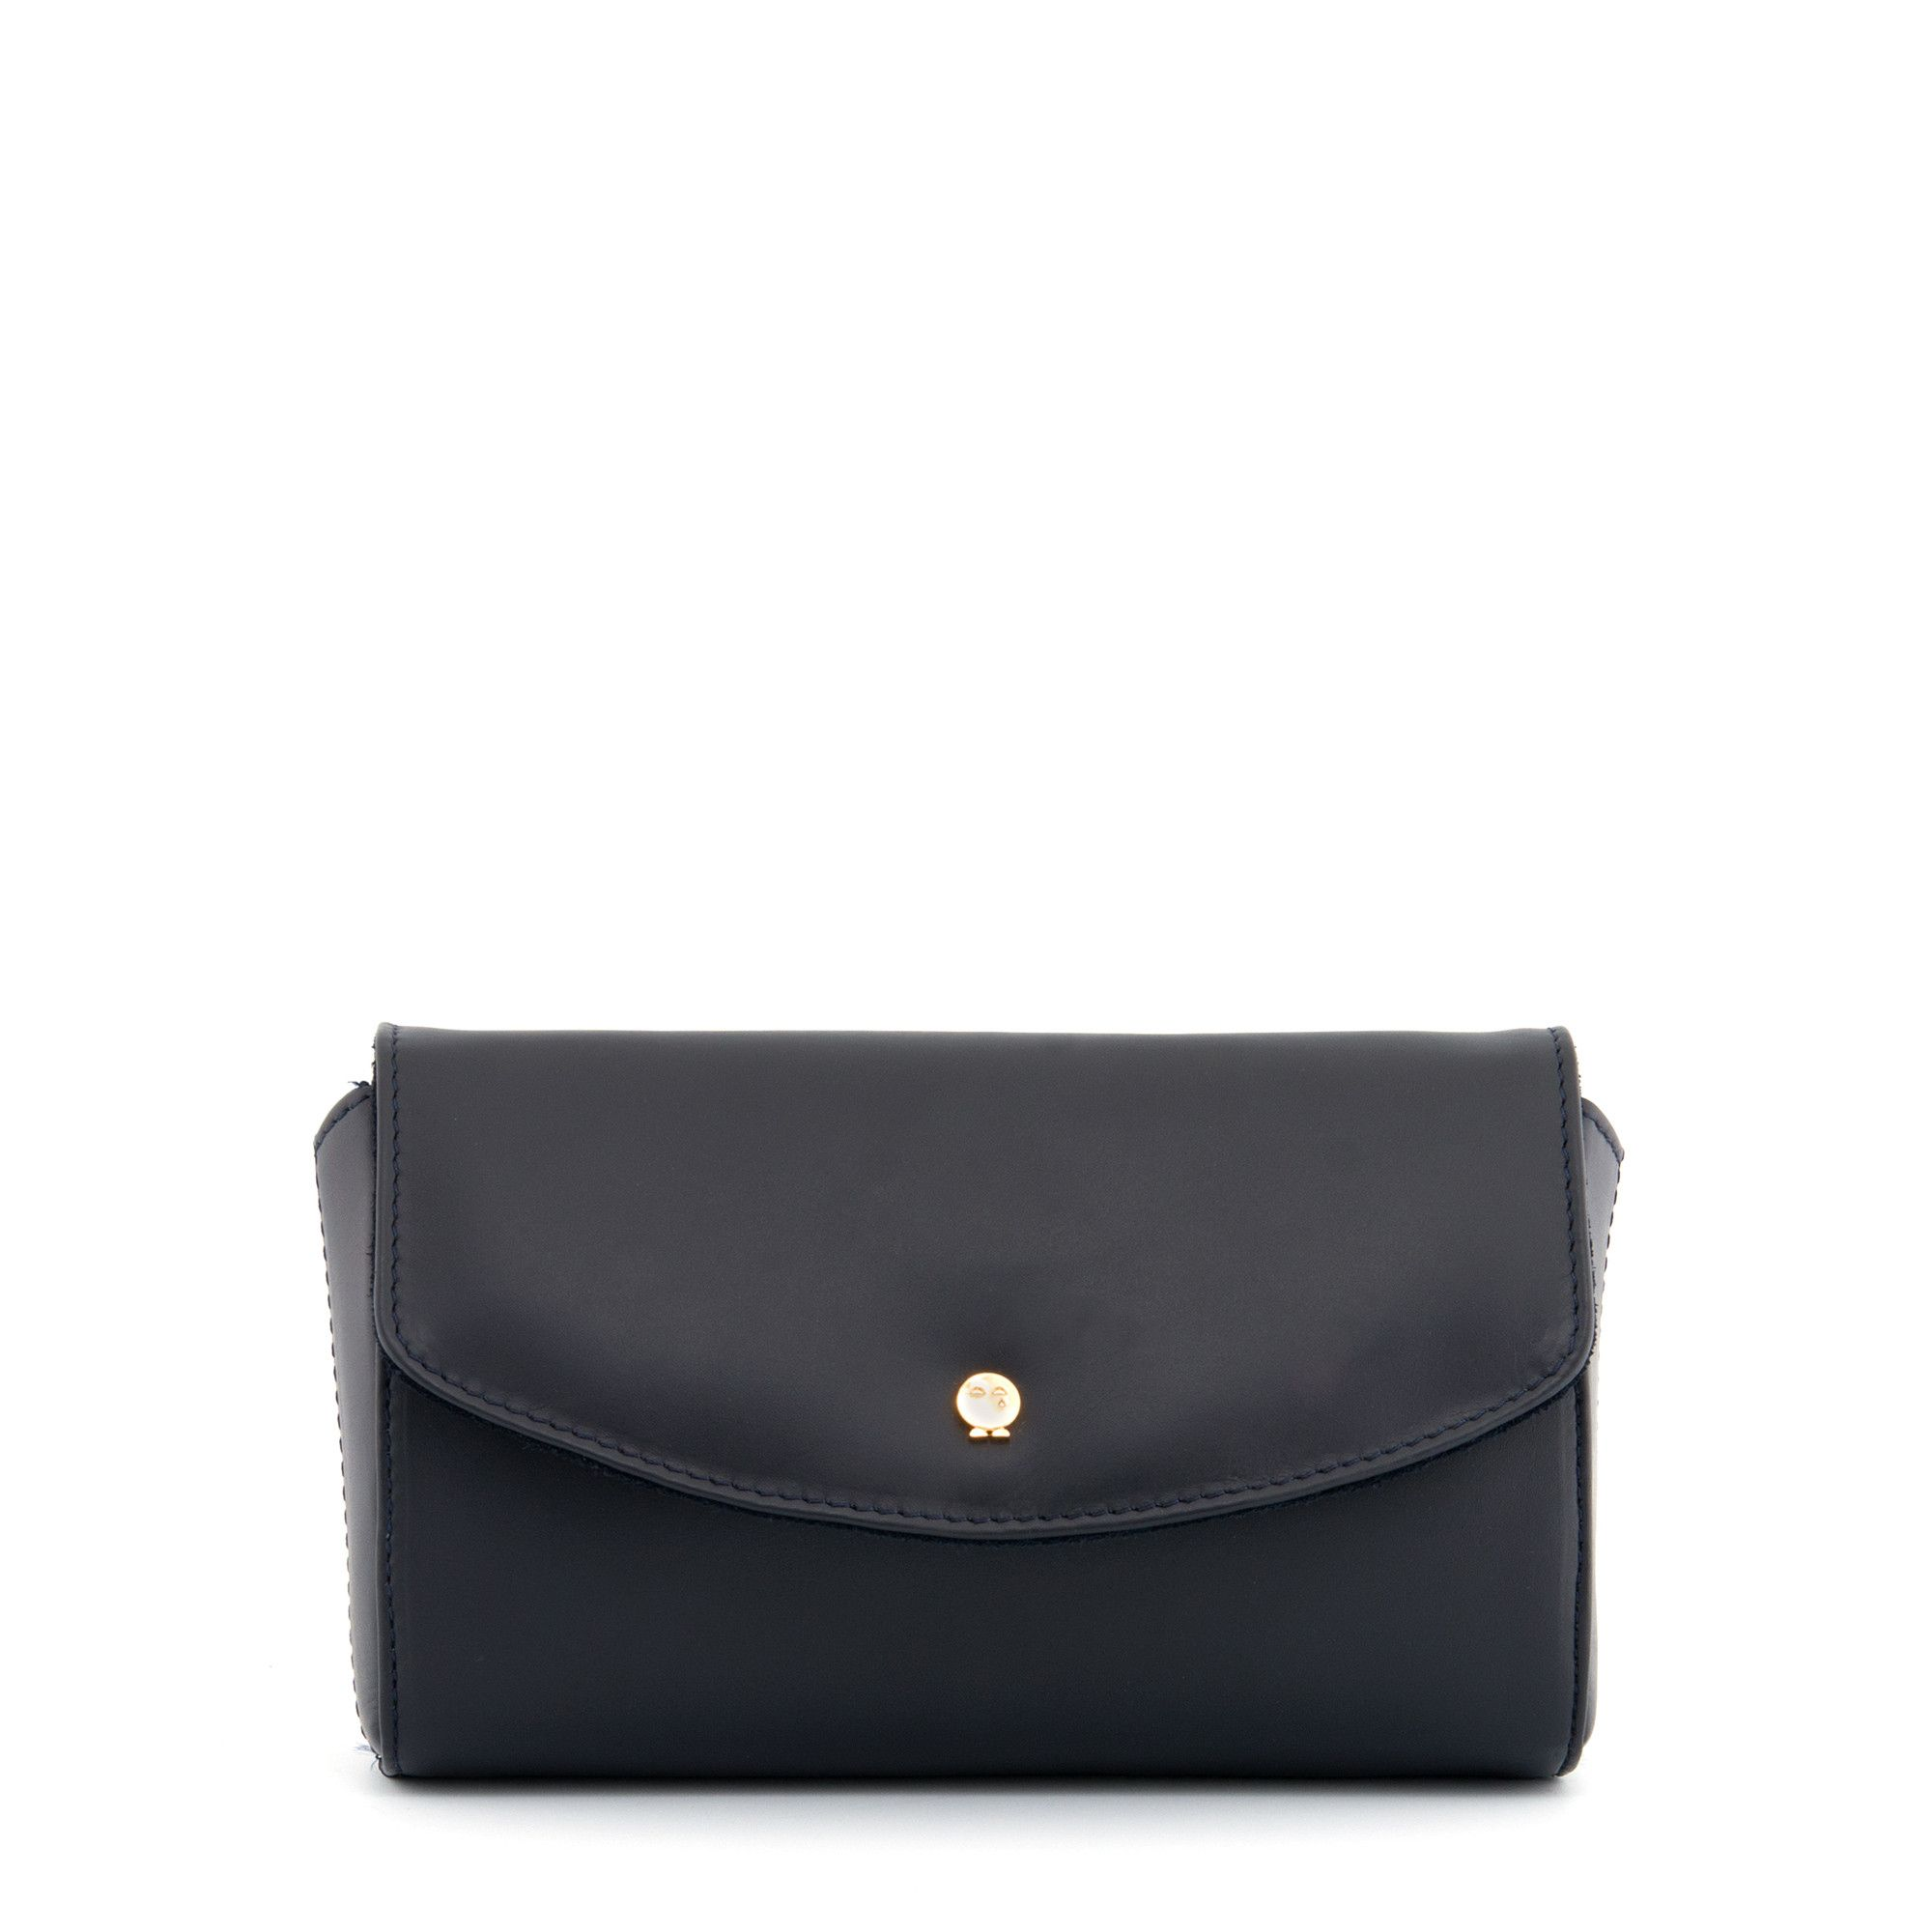 45b4d149077 The Crawford Navy Leather Clutch Bag by Yoshi | The Harlow ...